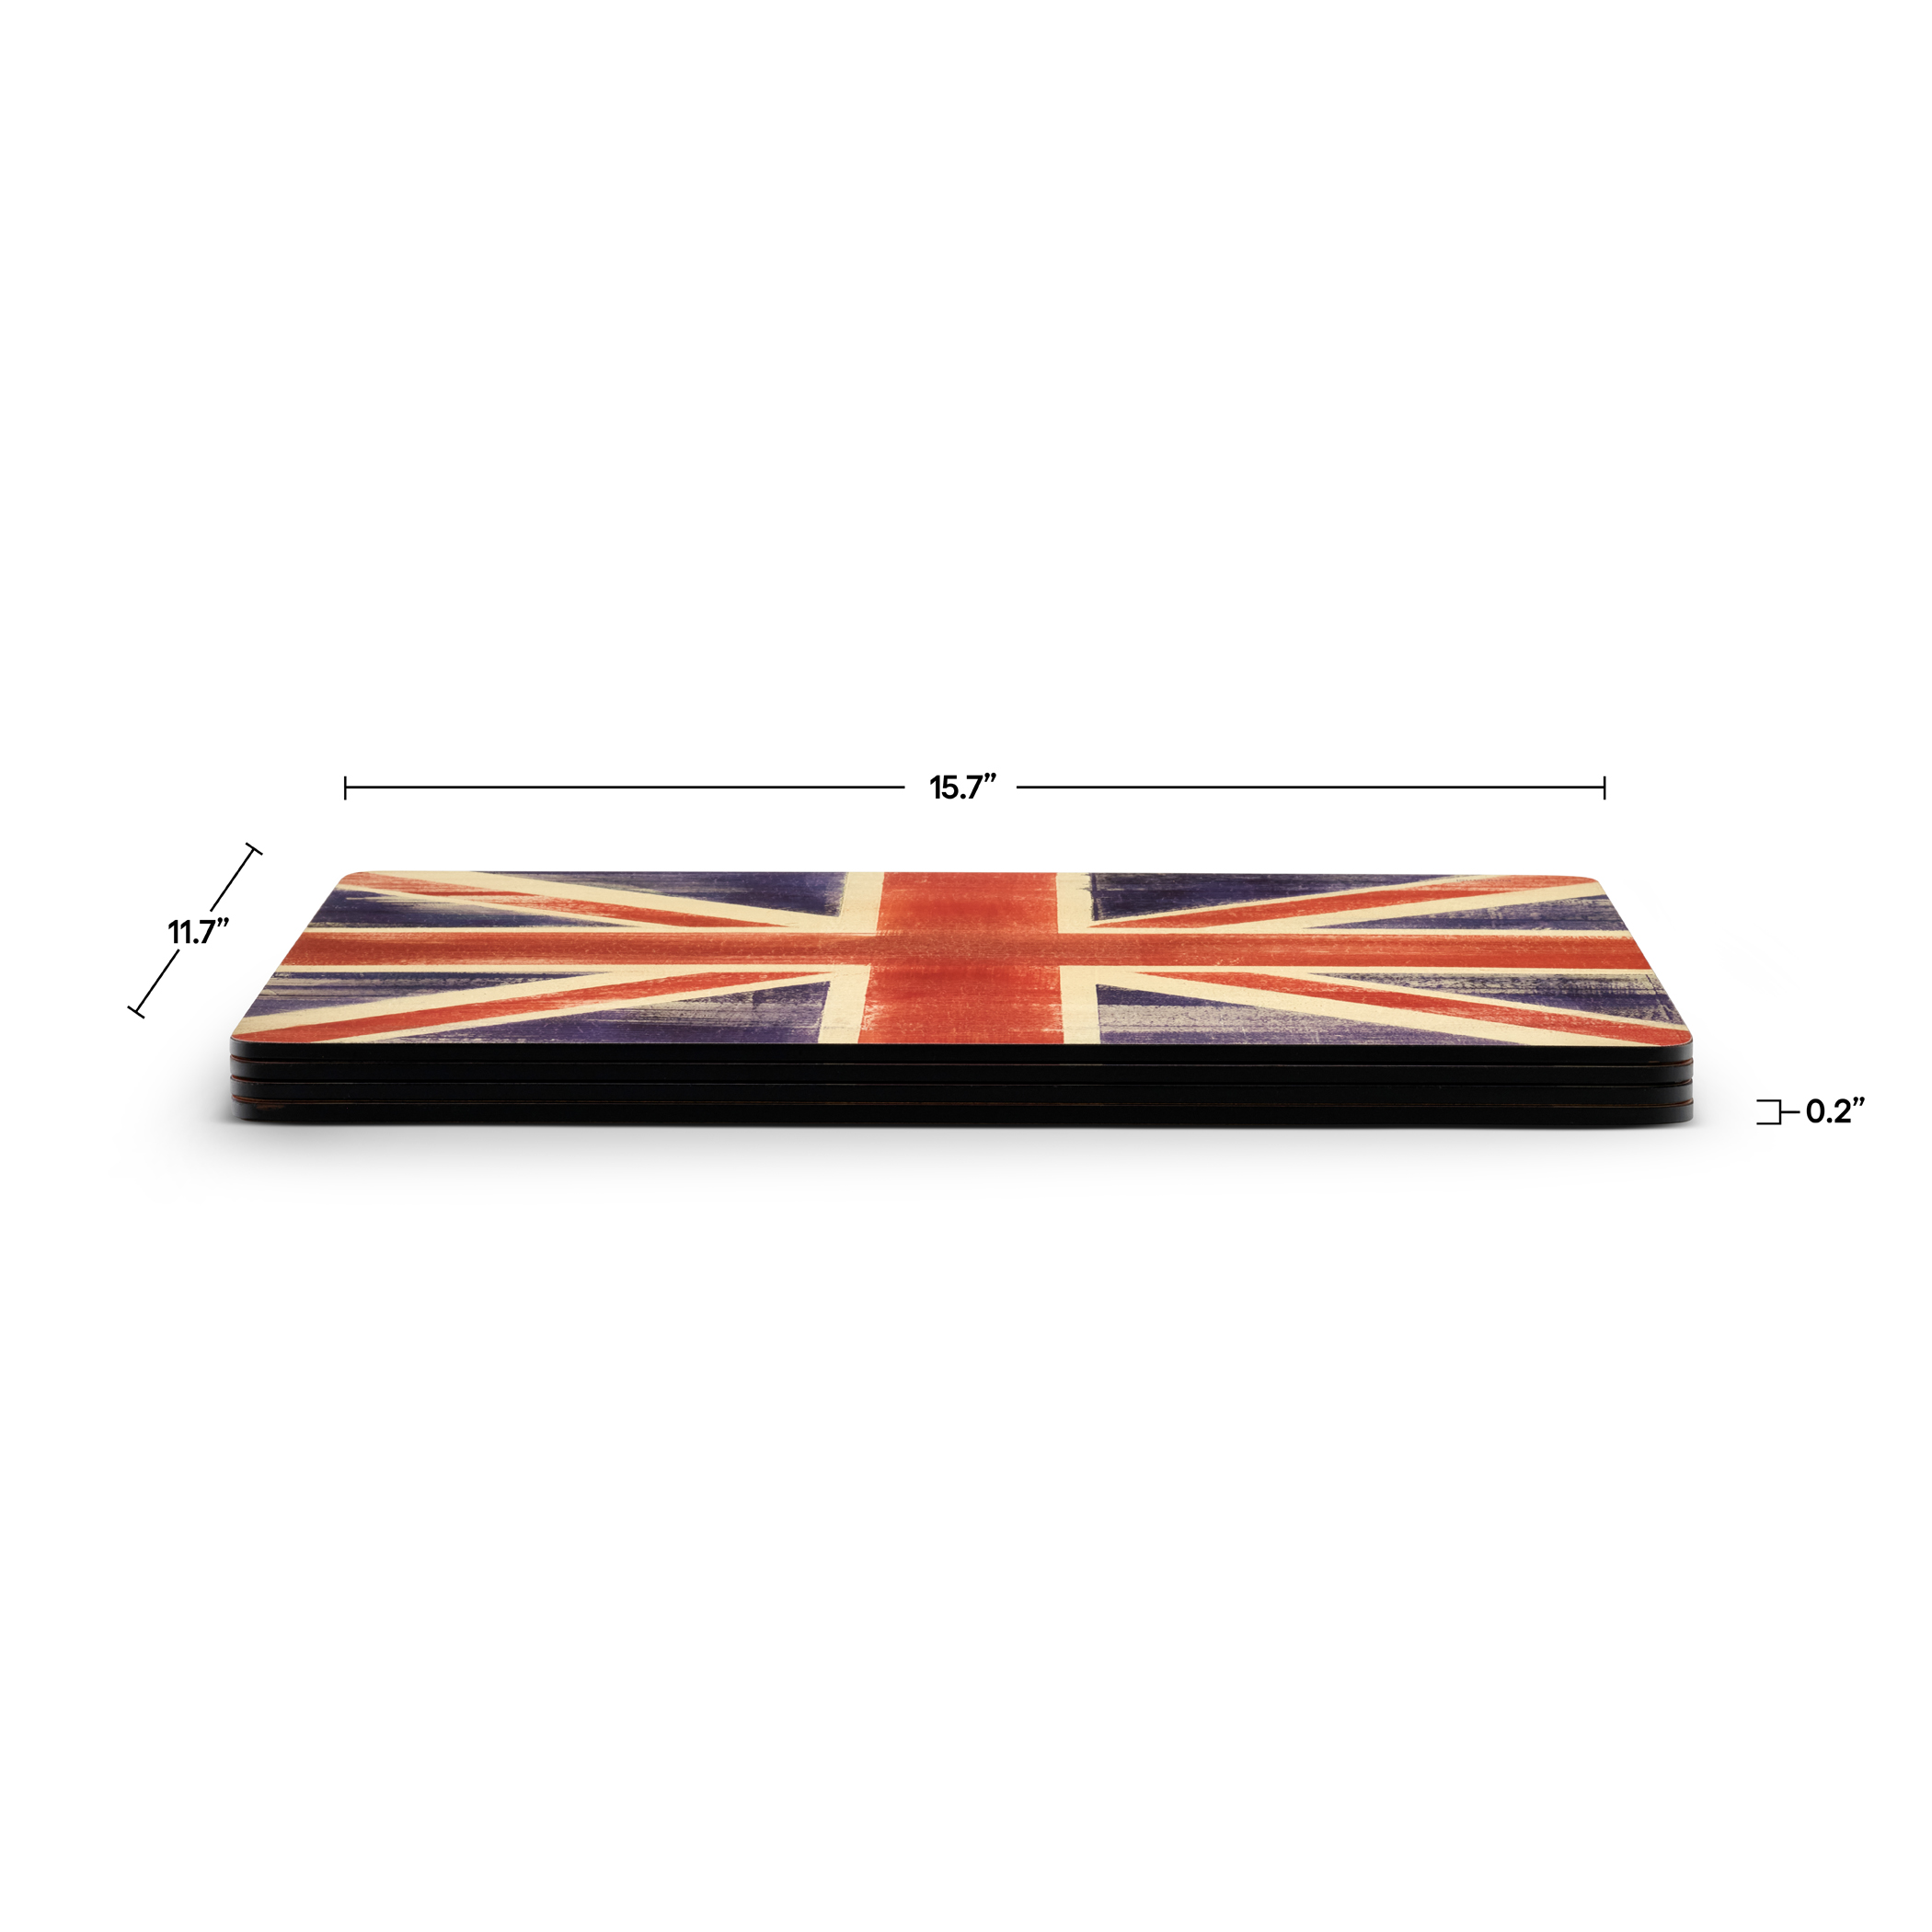 Pimpernel Union Jack Placemats Set of 4 image number 3